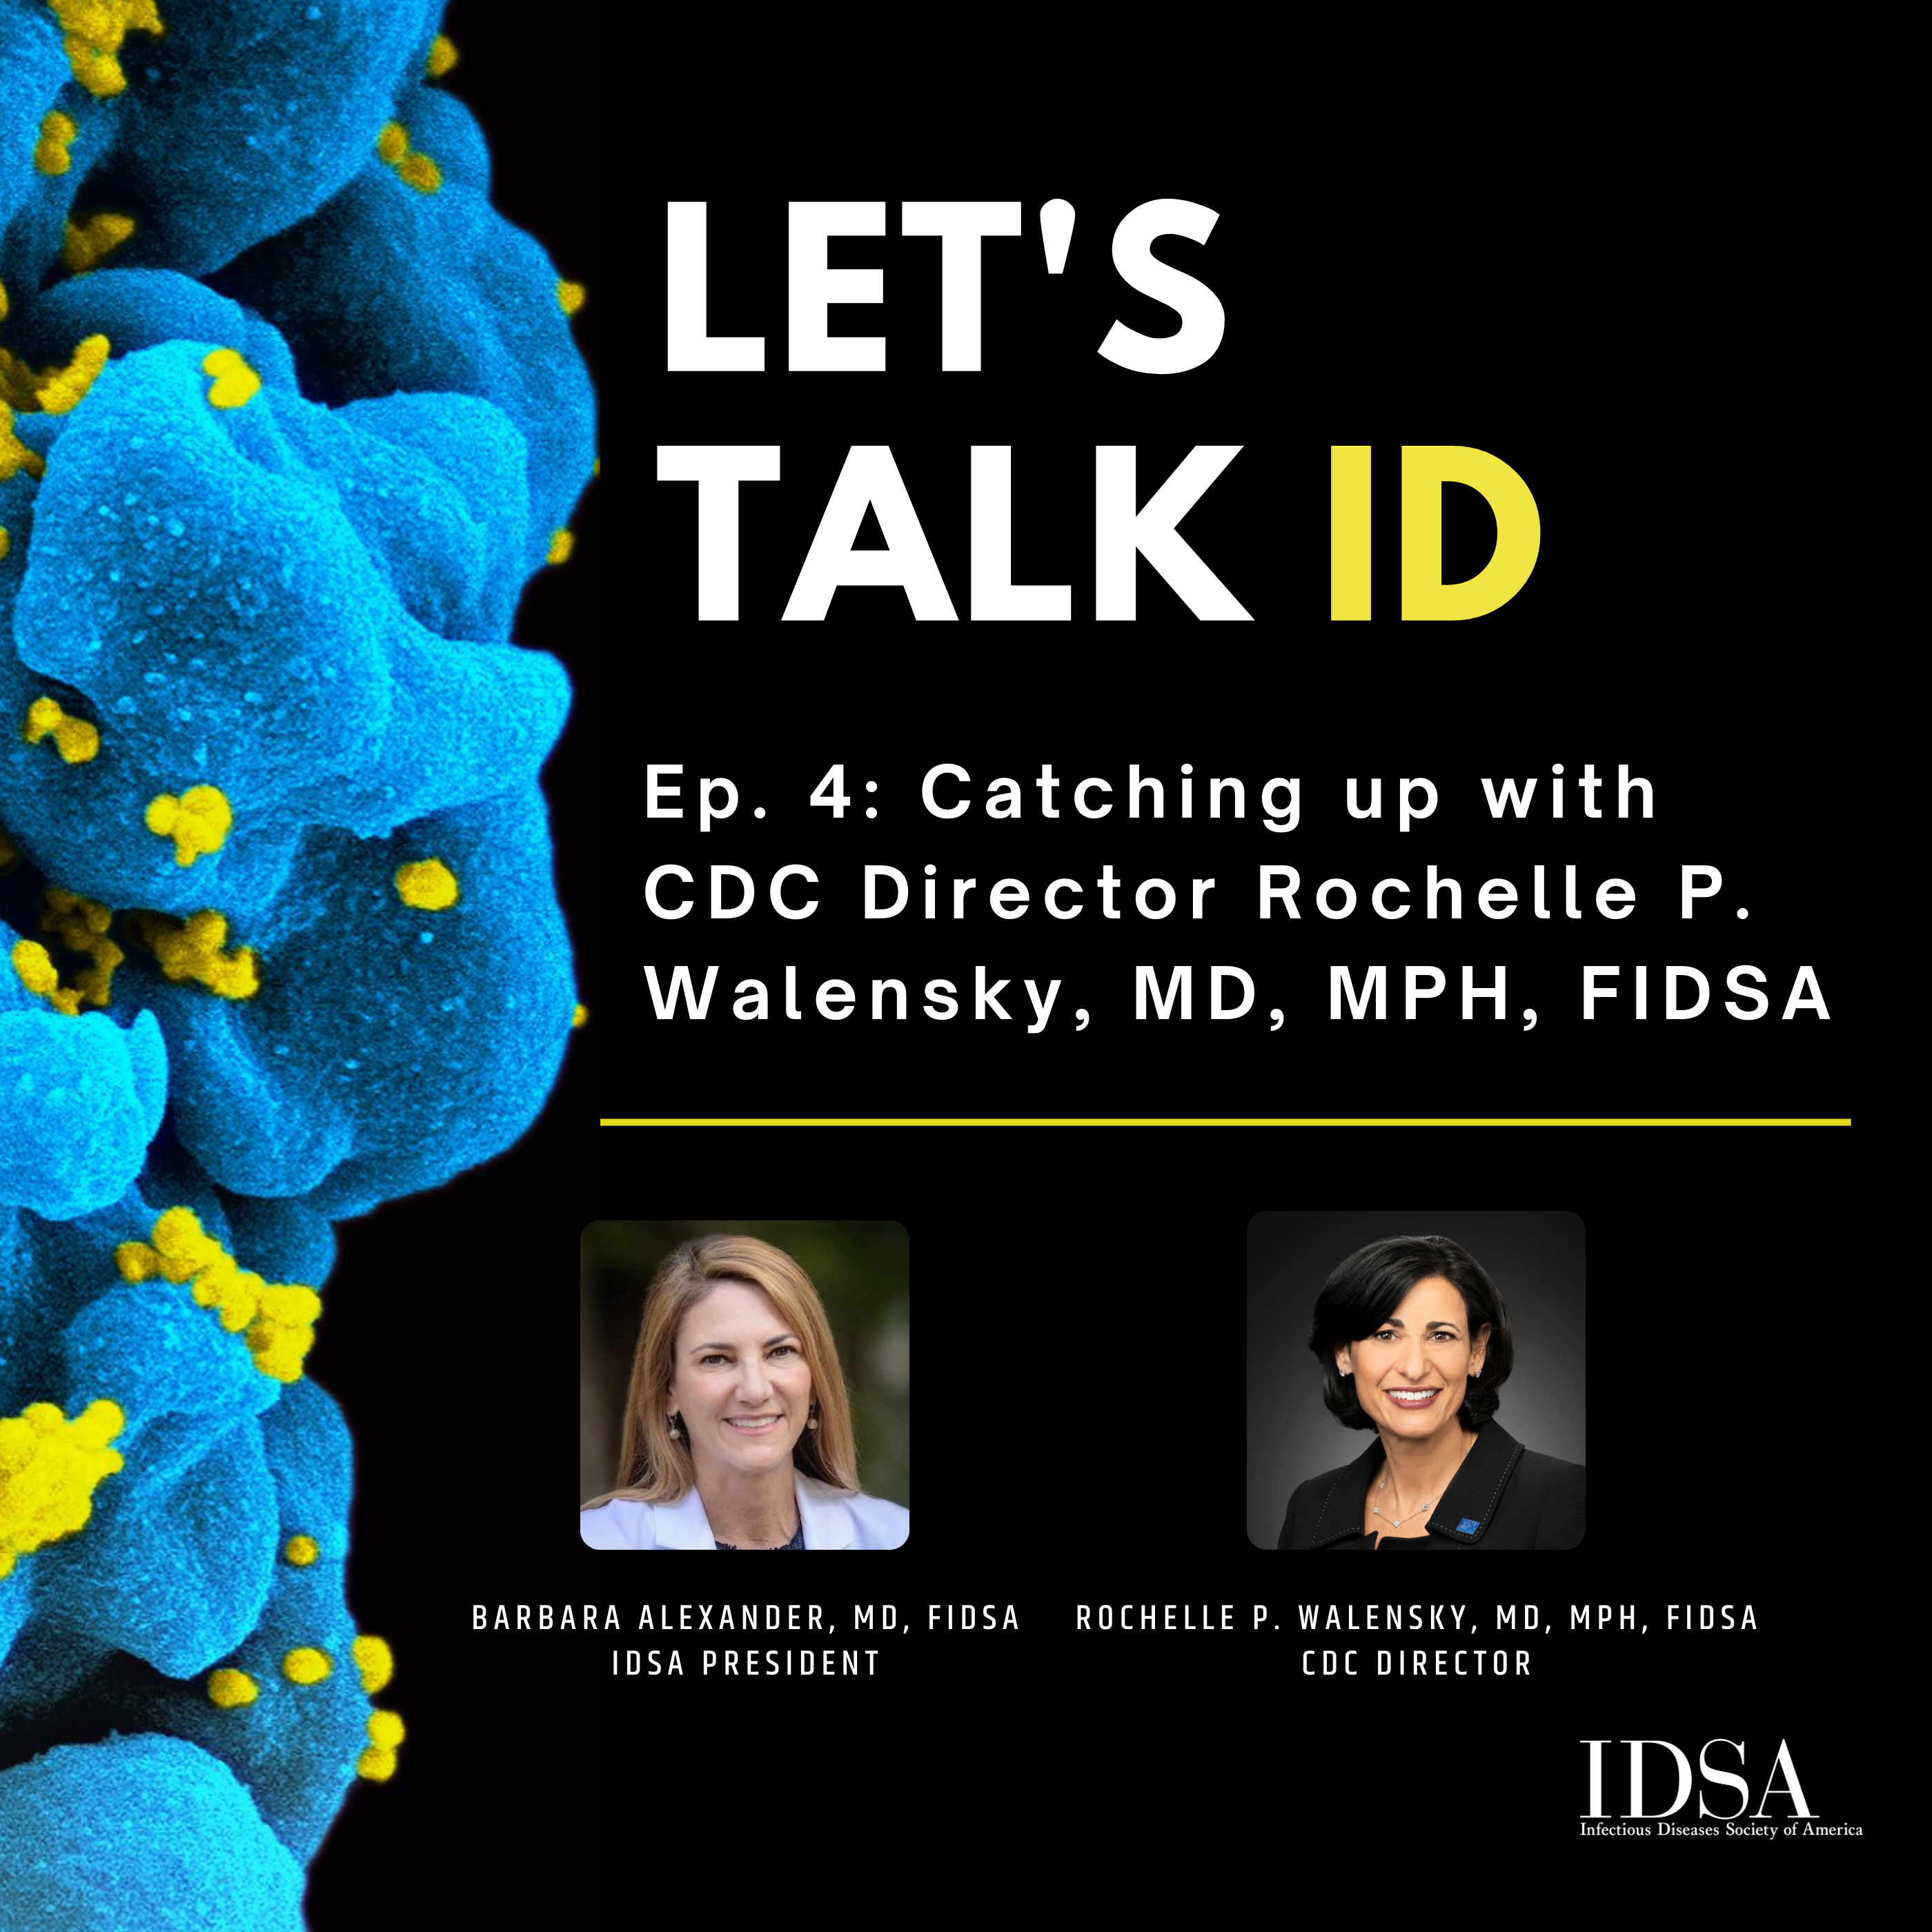 Let's Talk ID: Catching up with CDC Director Rochelle P. Walensky, MD, MPH, FIDSA